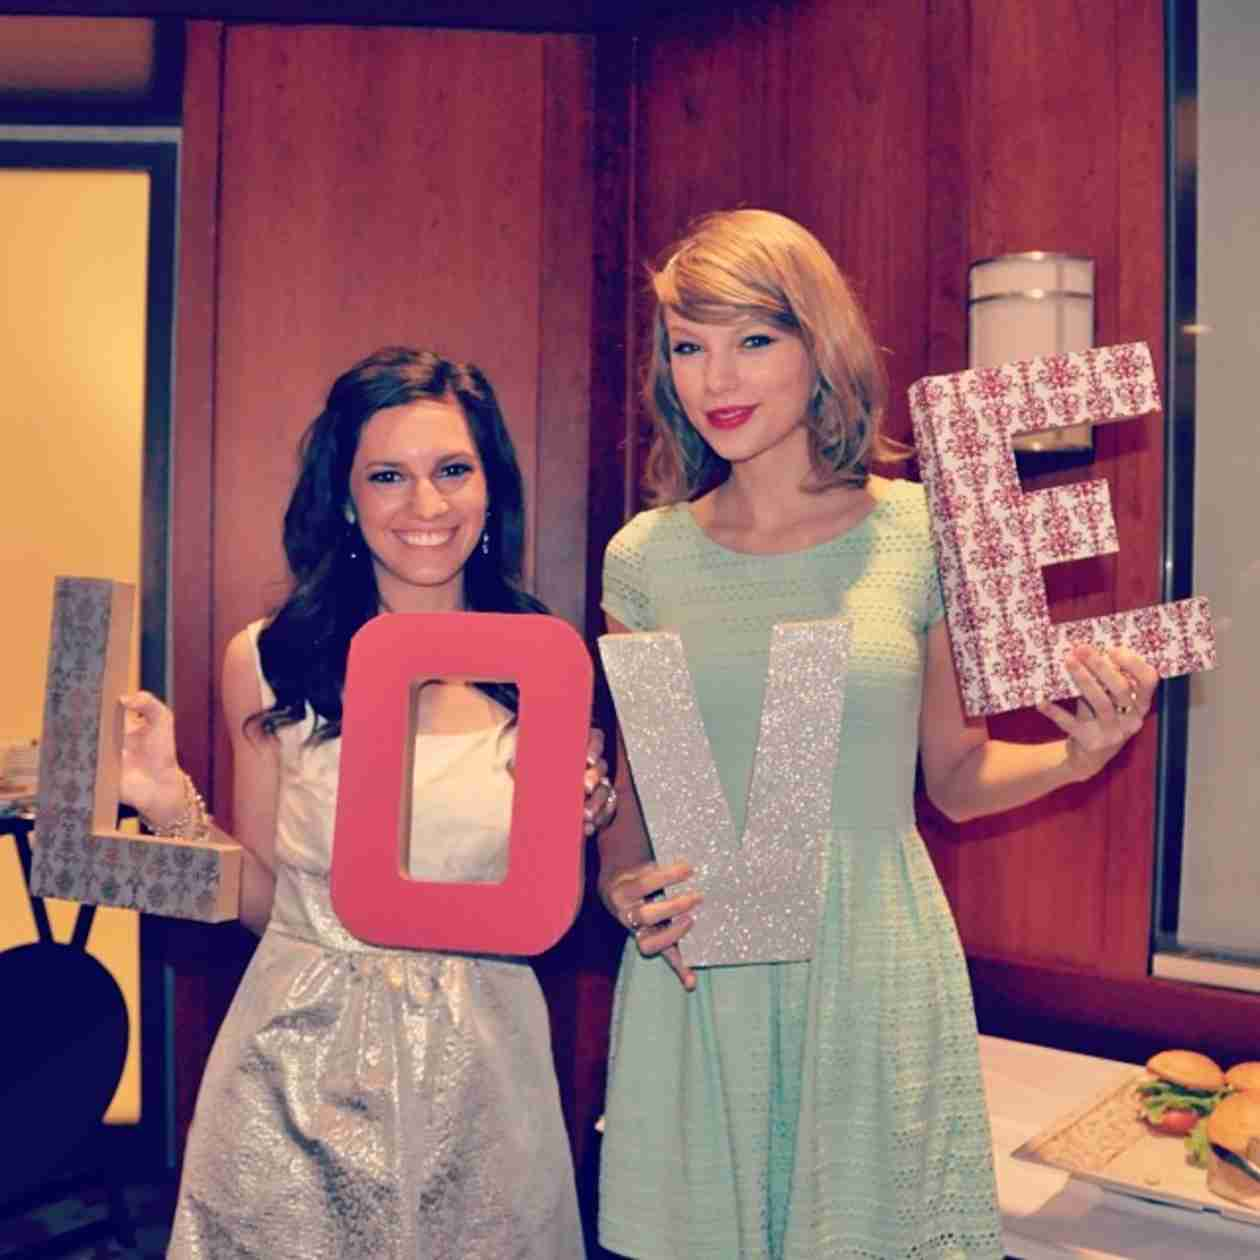 Taylor Swift Adorably Crashes Fan's Bridal Shower (VIDEO)